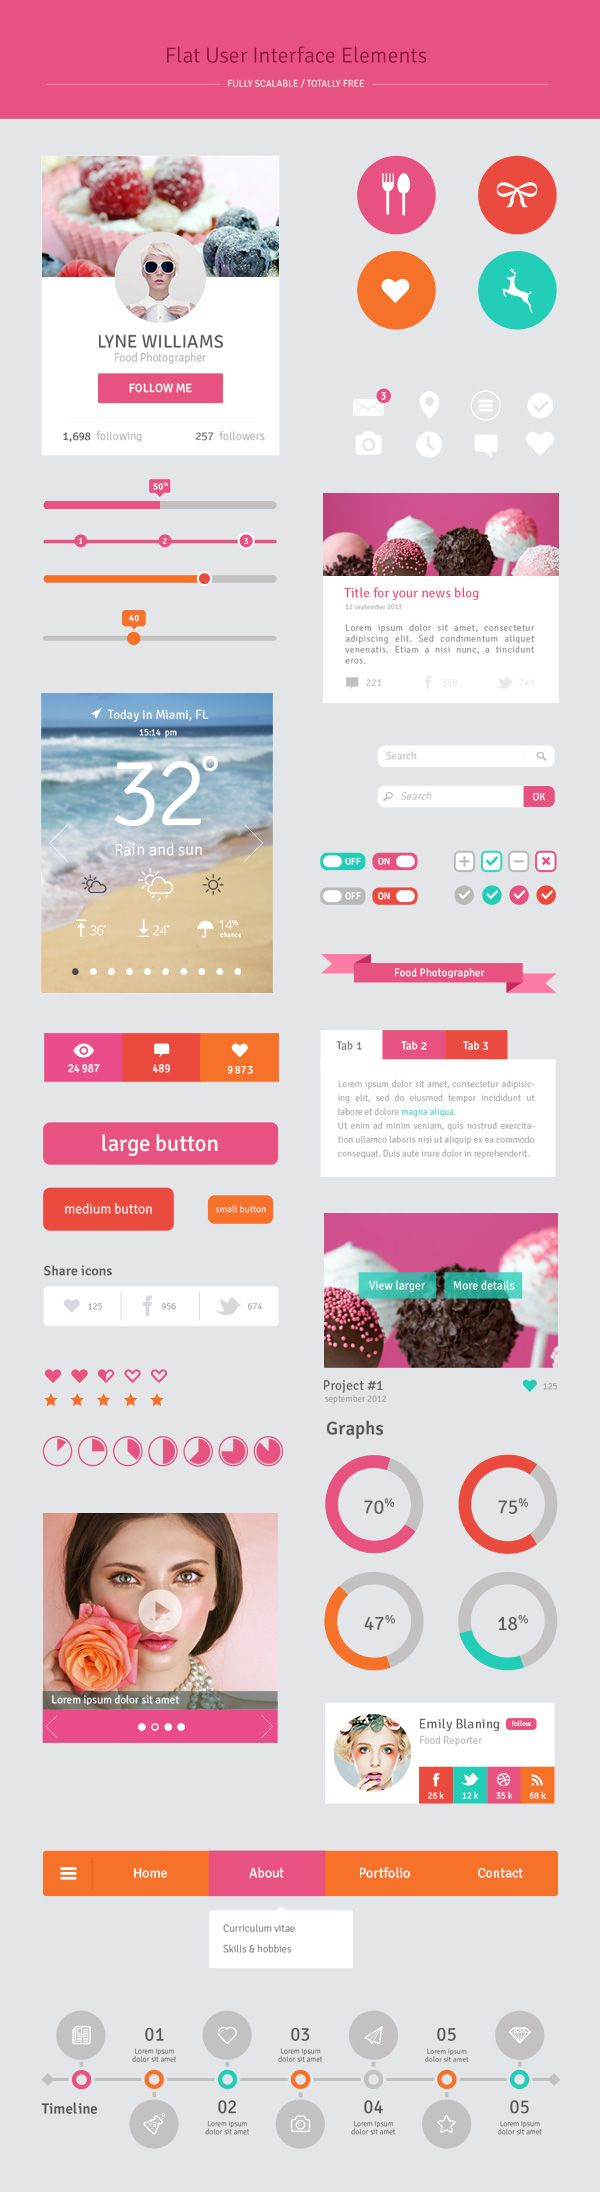 Flat UI Elements | GraphicBurgerhttp://graphicburger.com/down/?q=cicons-40-outline-icons DOWNLOOAD